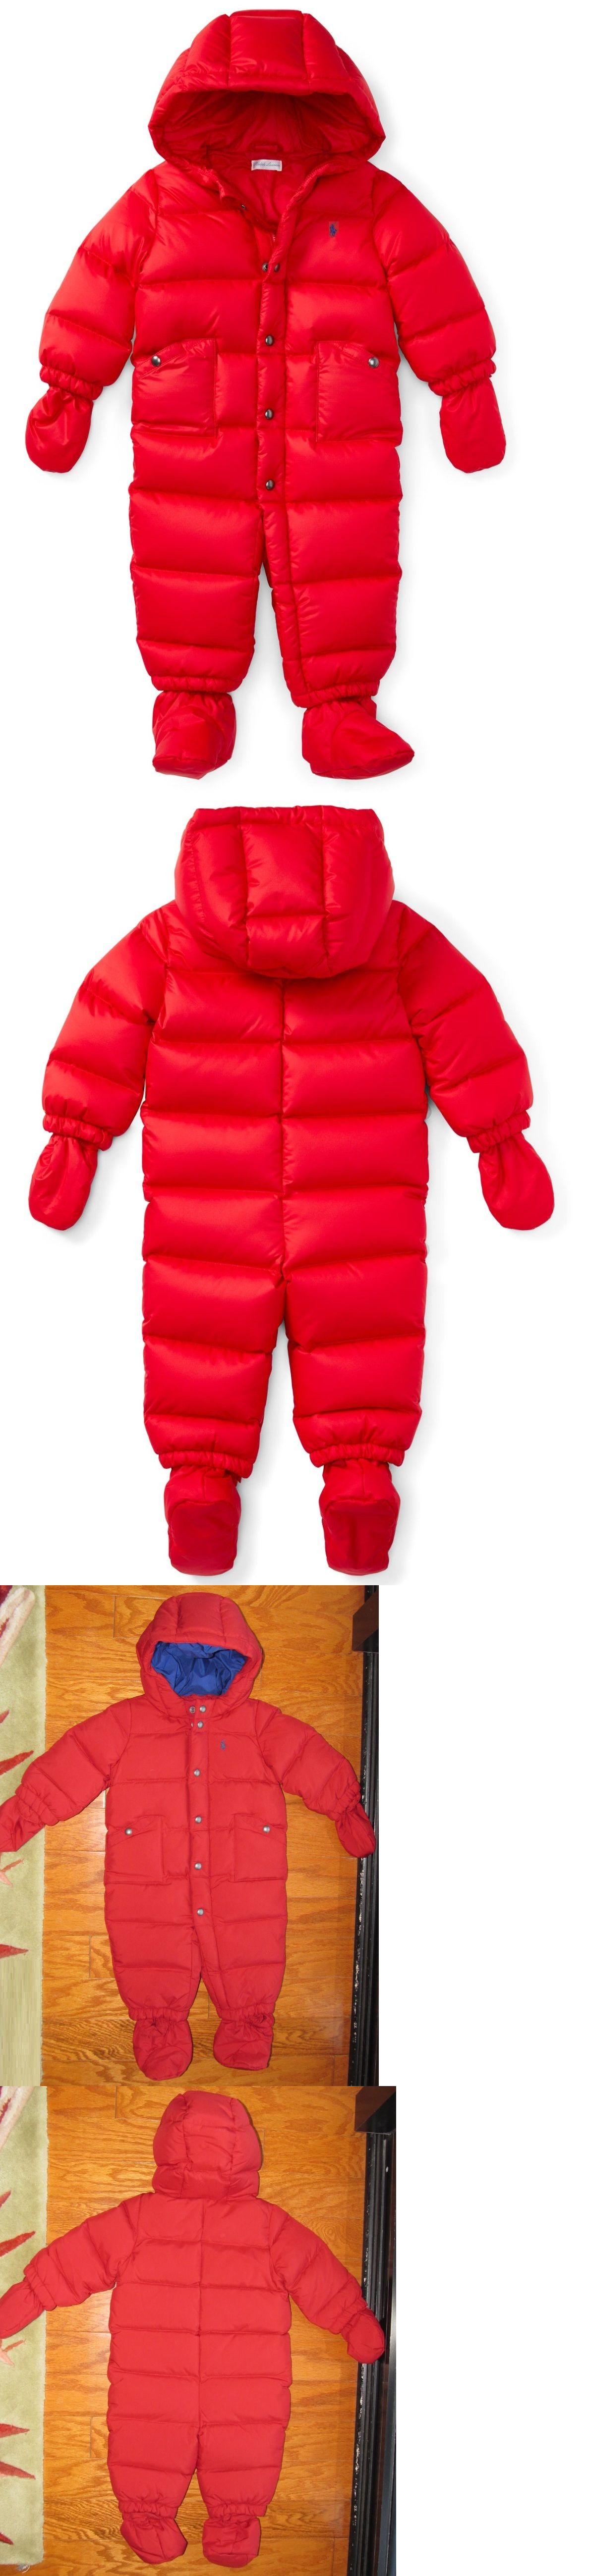 e38af502efa8 Outerwear 147324  New  165 Rl Polo Ralph Lauren Baby Boys Down Quilted  Bunting Snowsuit 6M Red -  BUY IT NOW ONLY   69.99 on eBay!